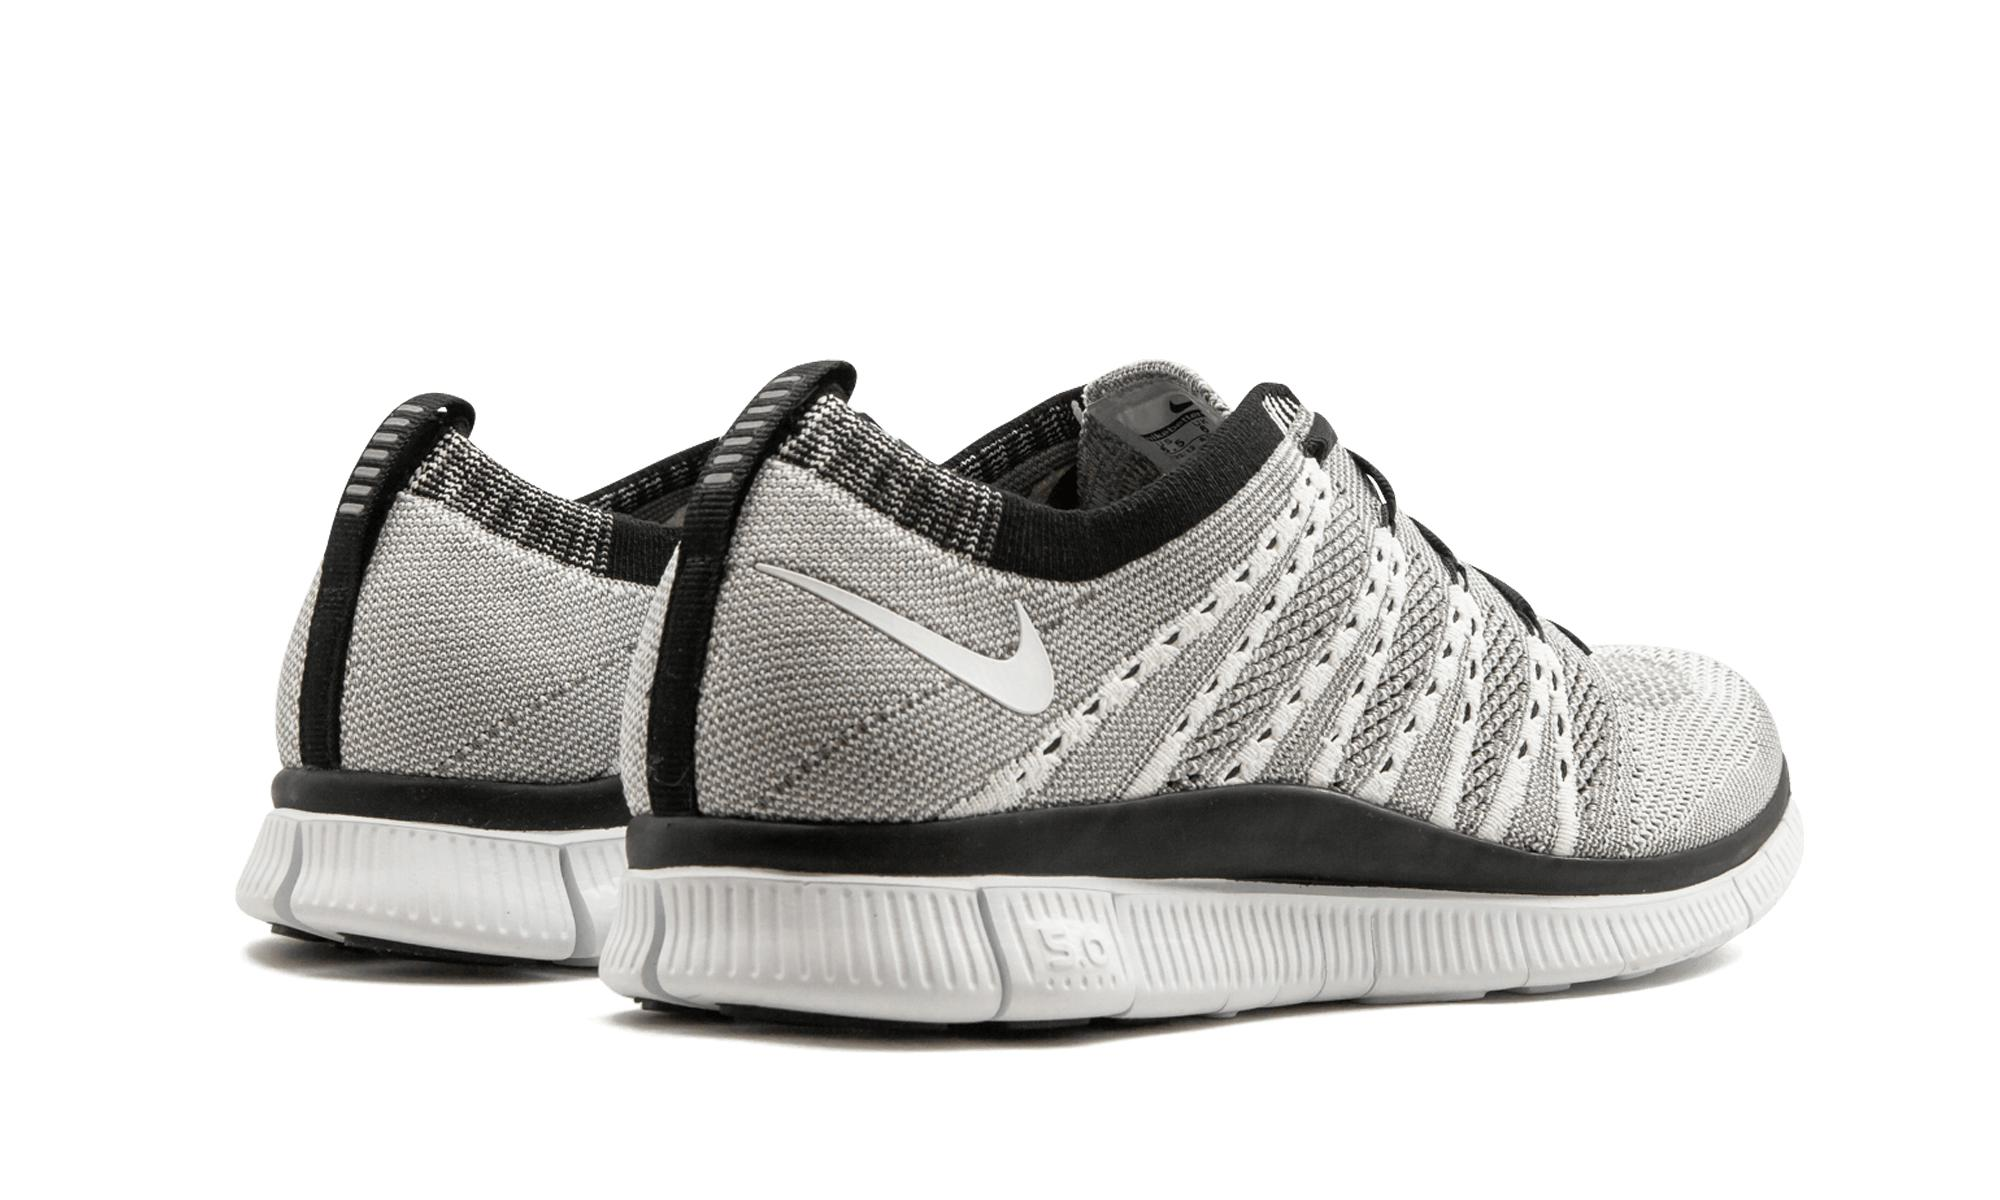 6e03ca1c44e1 ... discount code for bianca sp at for htm in nike lyst nonsense flyknit  free uomo x7qpait